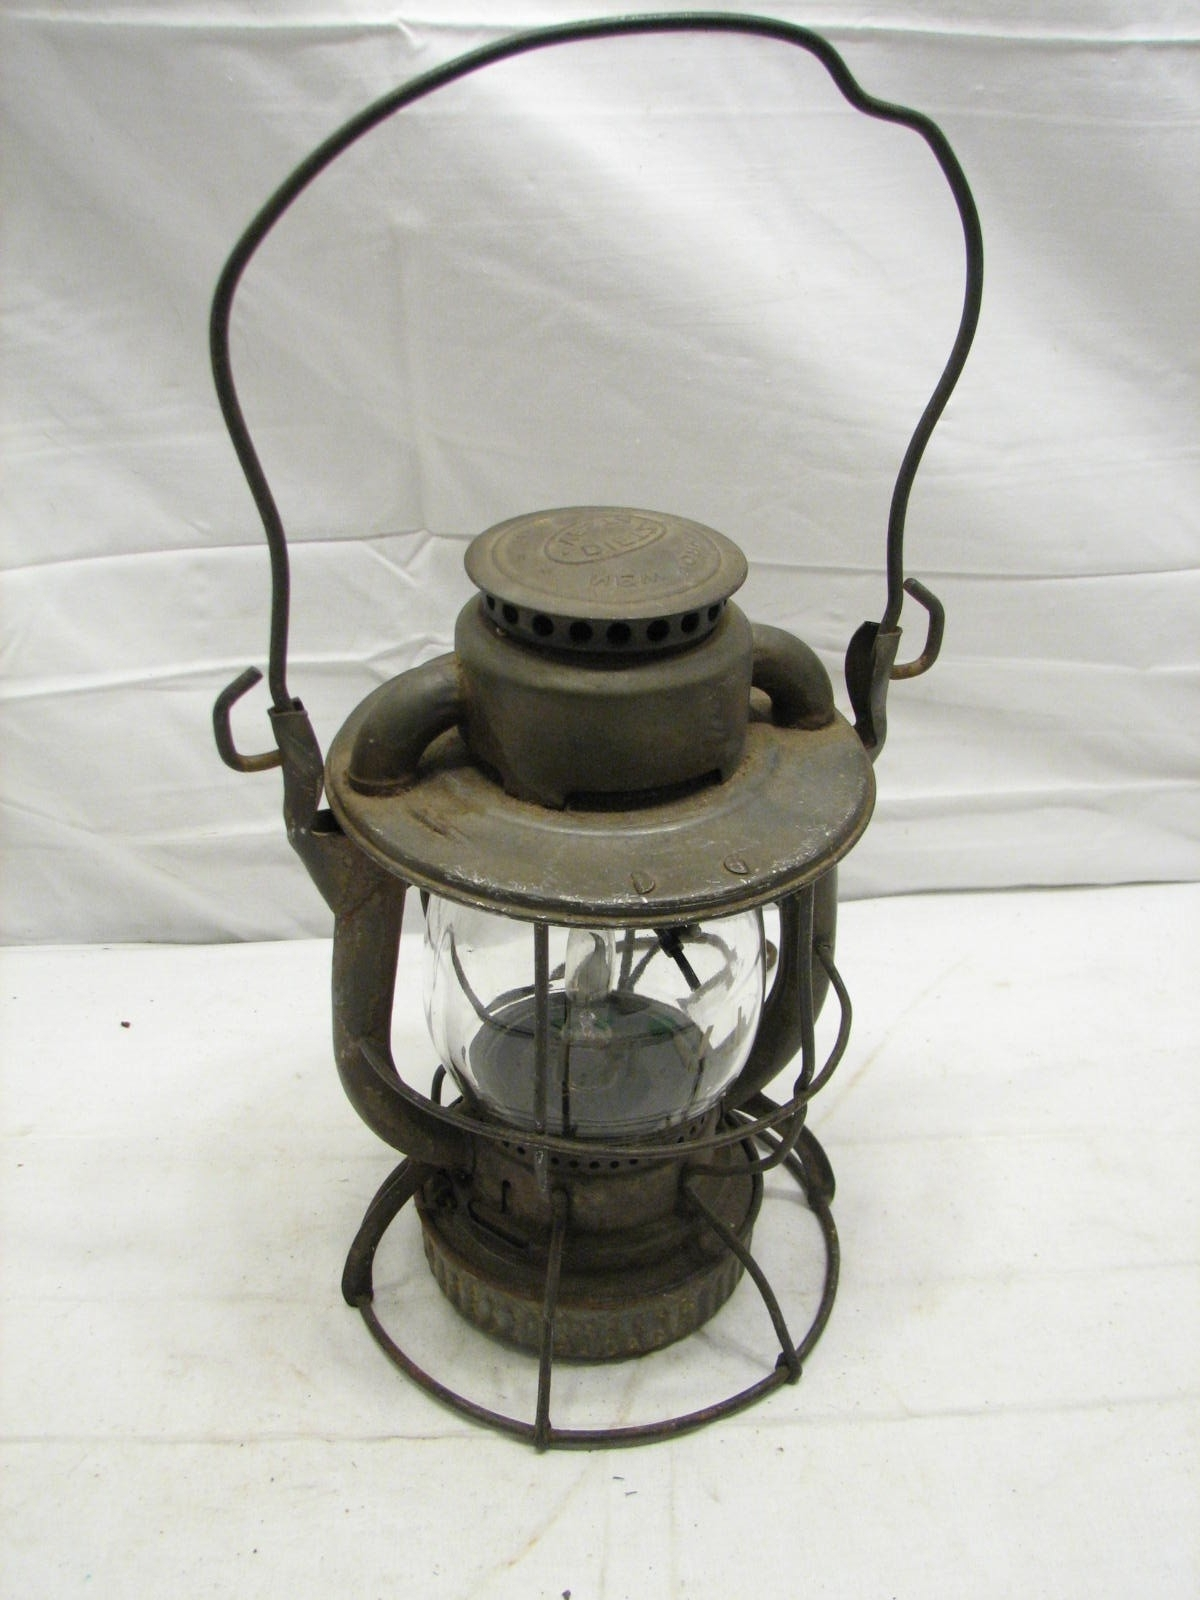 Most Popular Antique Lvrr Lehigh Valley Railroad Lantern Dietz Vesta Electrified Regarding Outdoor Railroad Lanterns (View 6 of 20)